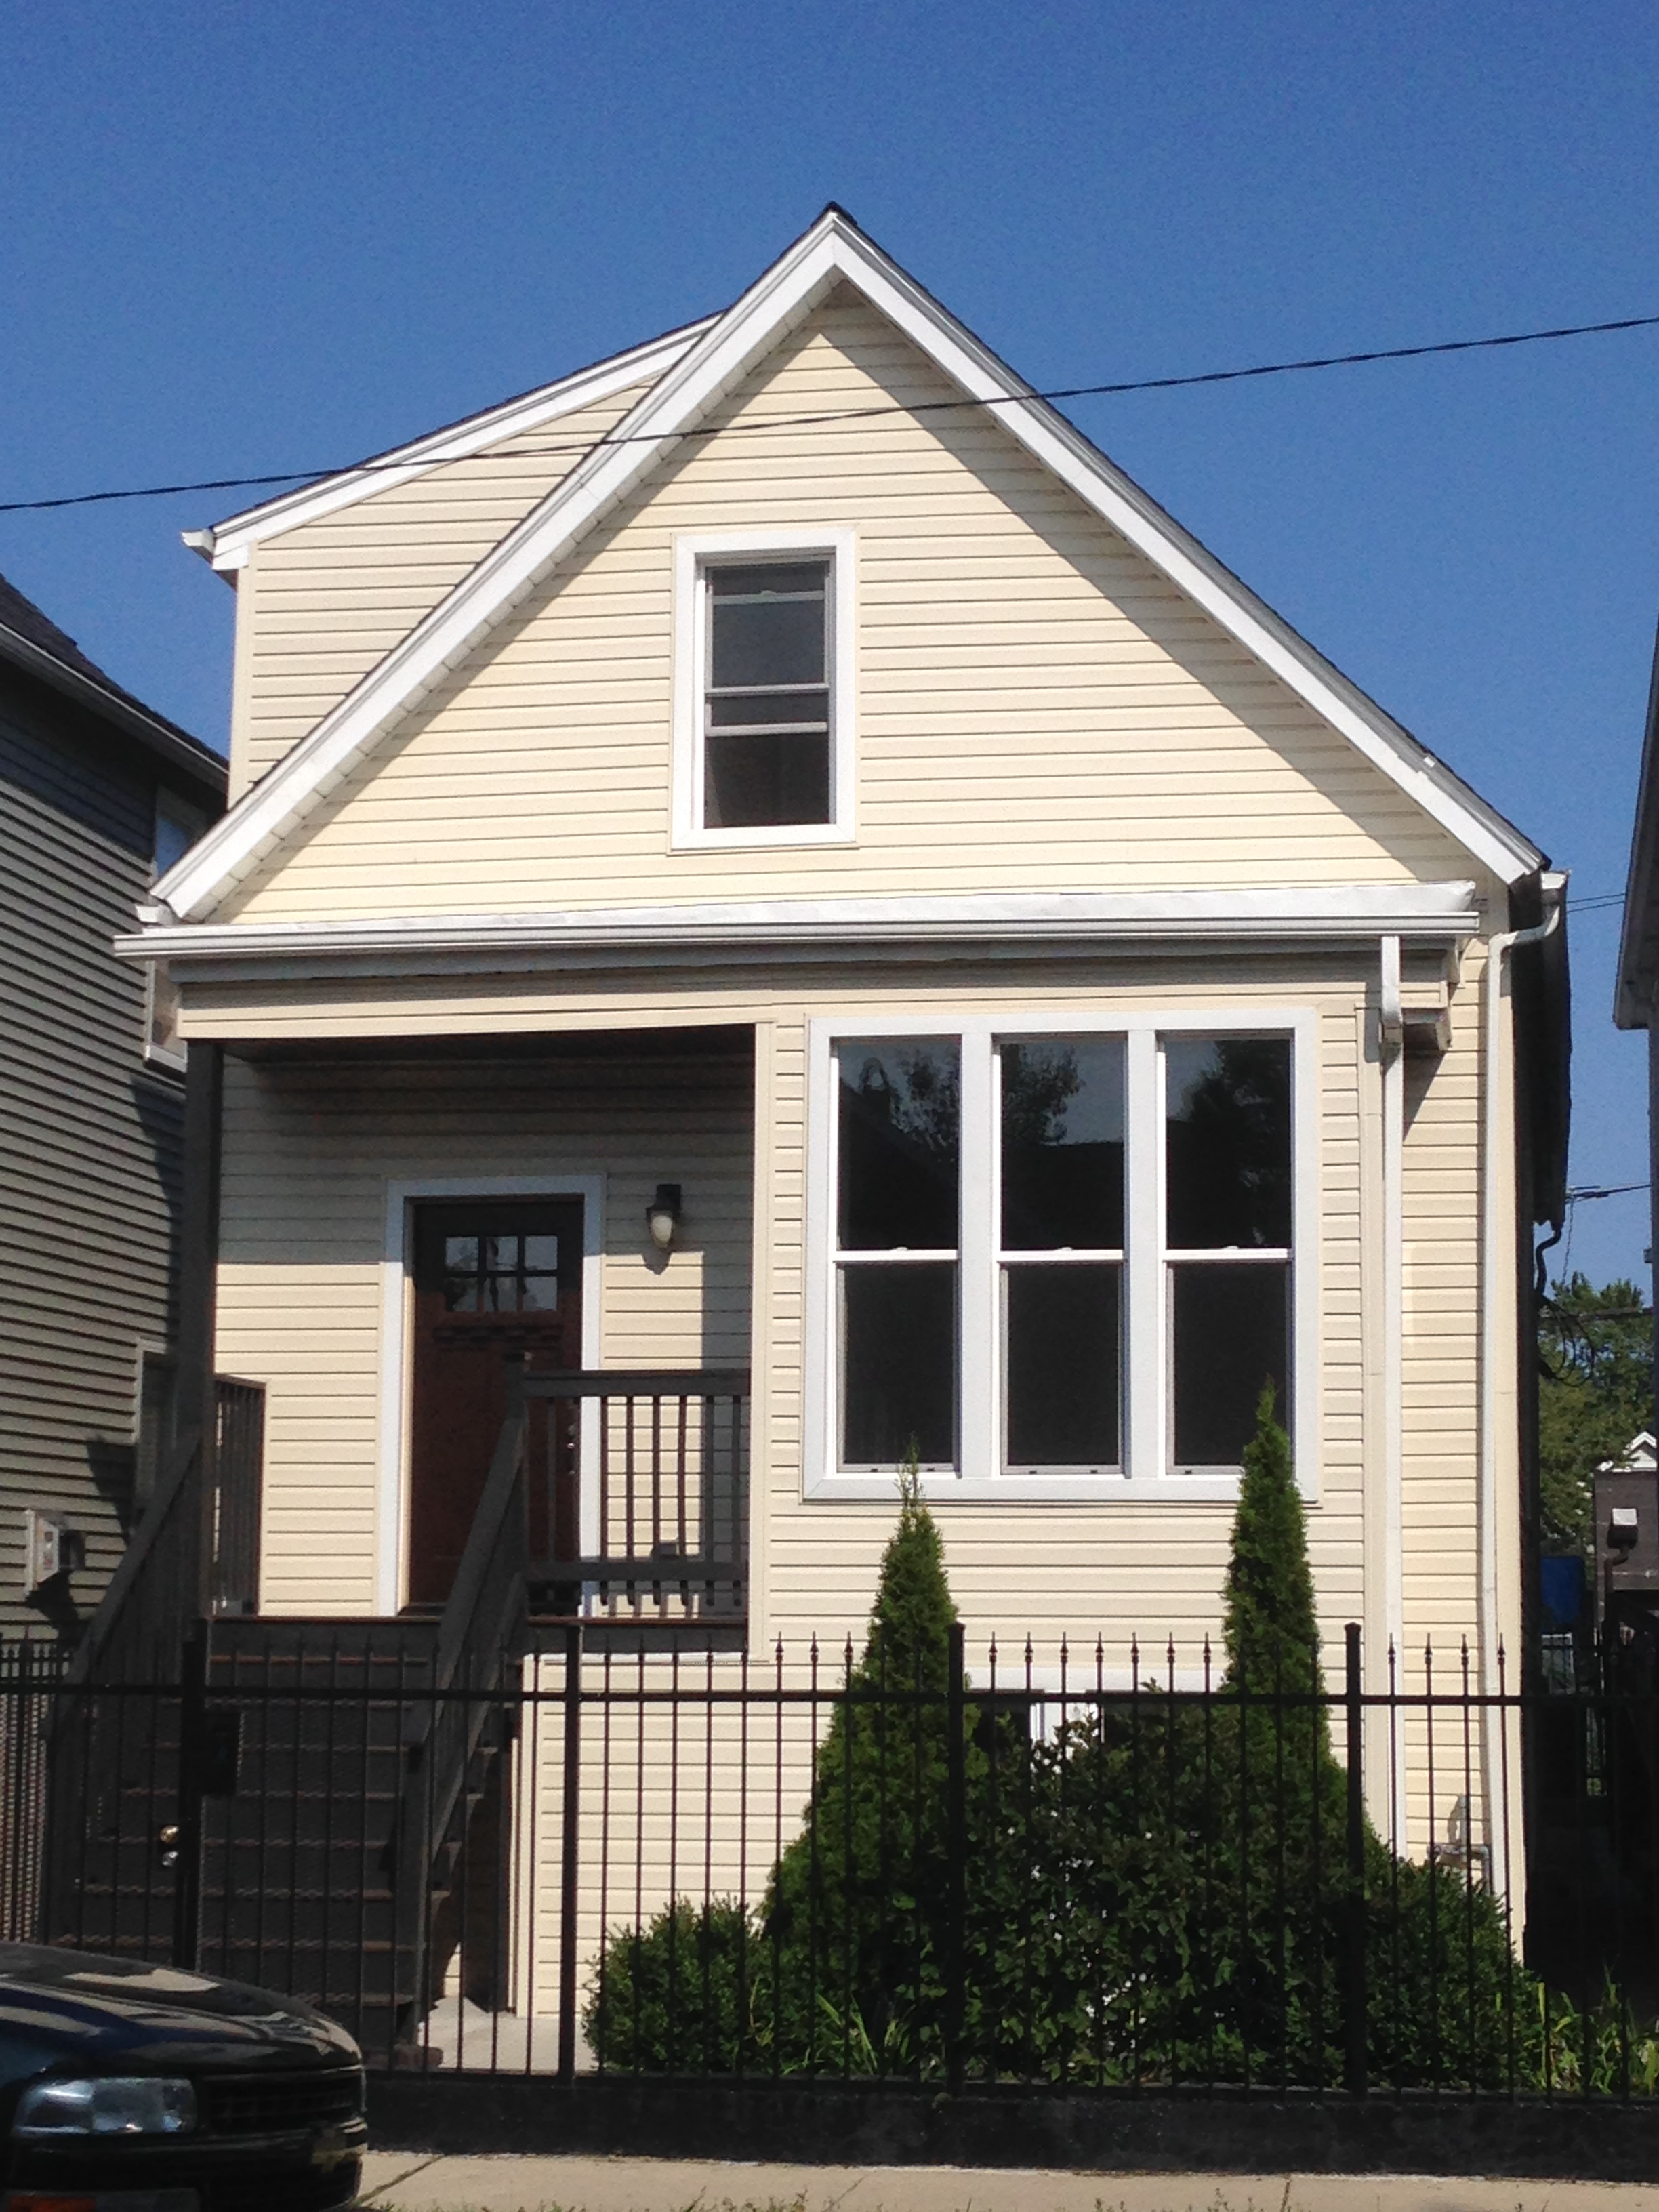 Chicago, USA – Single Family Home in HOT Logan Square